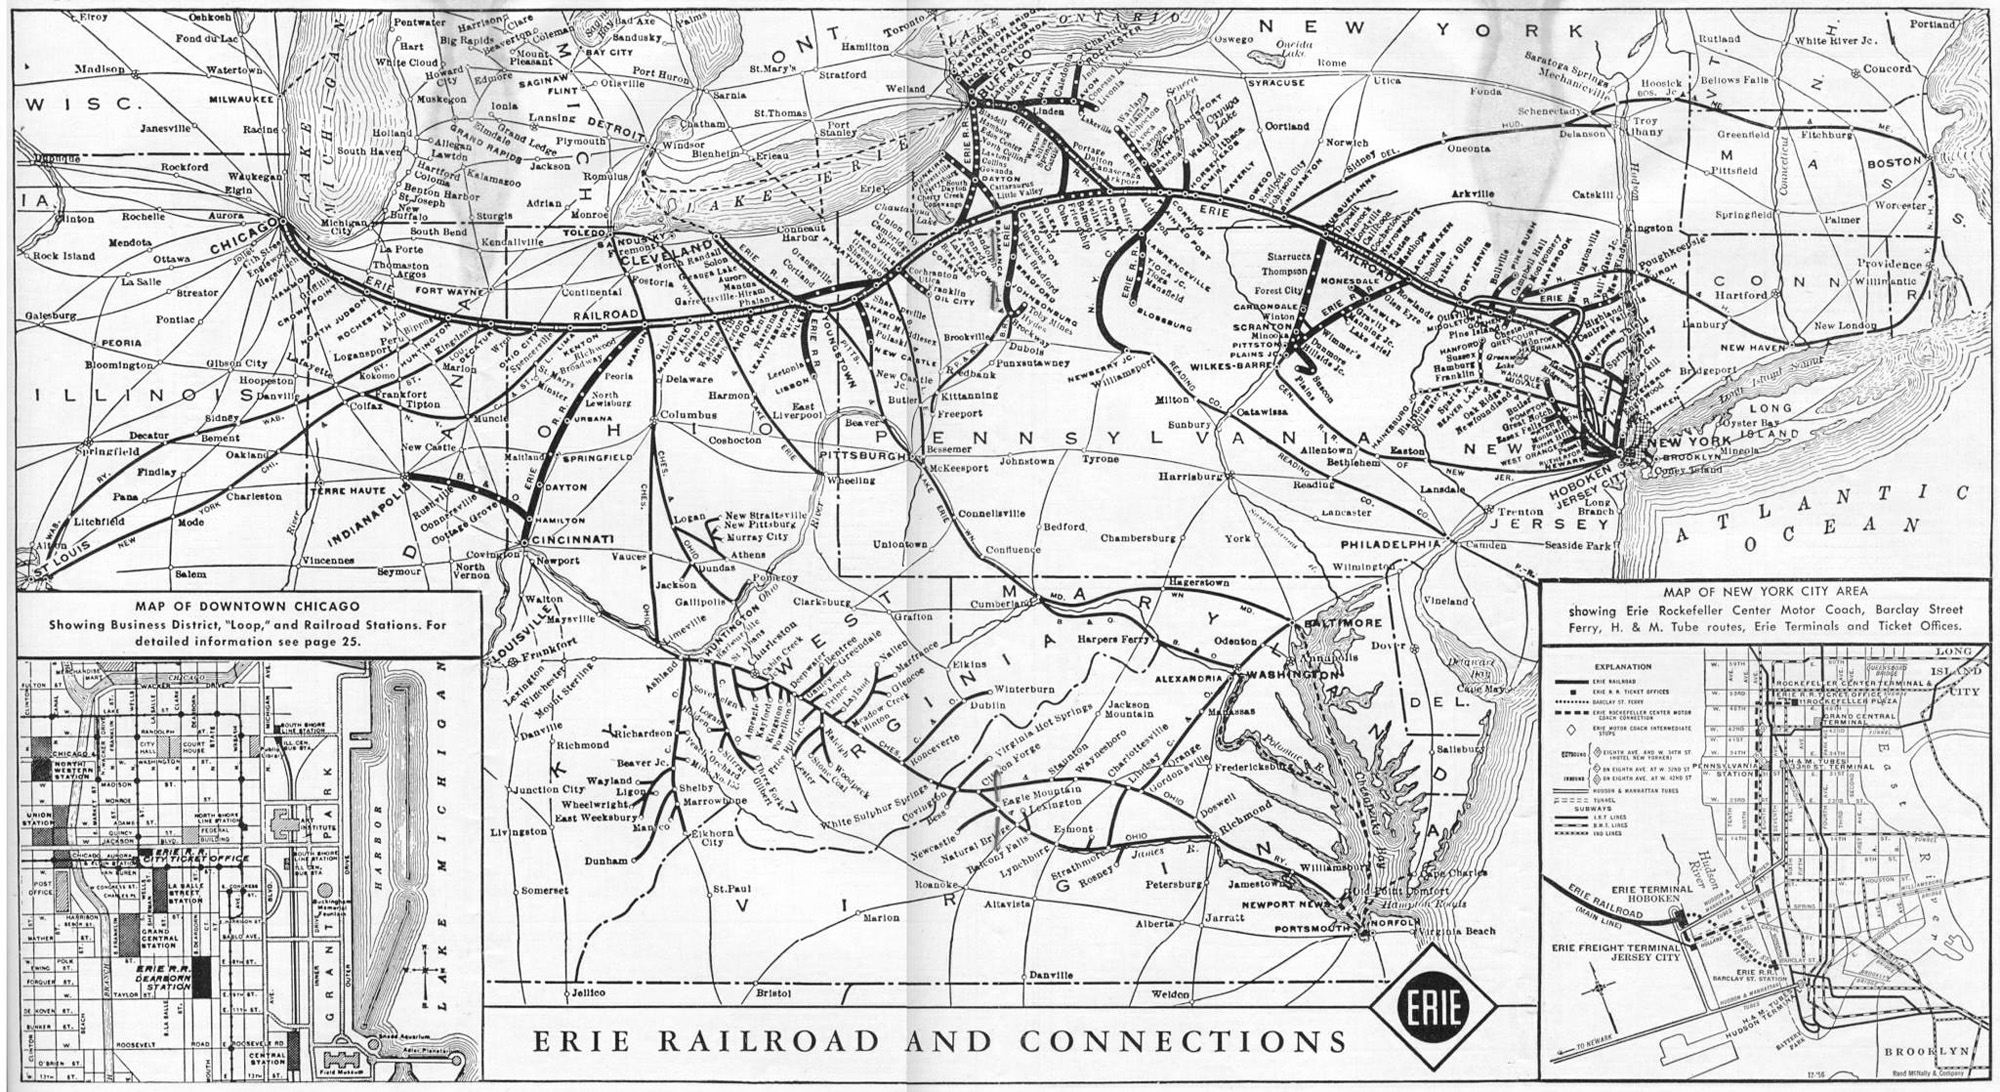 The Erie Railroad - Us railroad traffic map